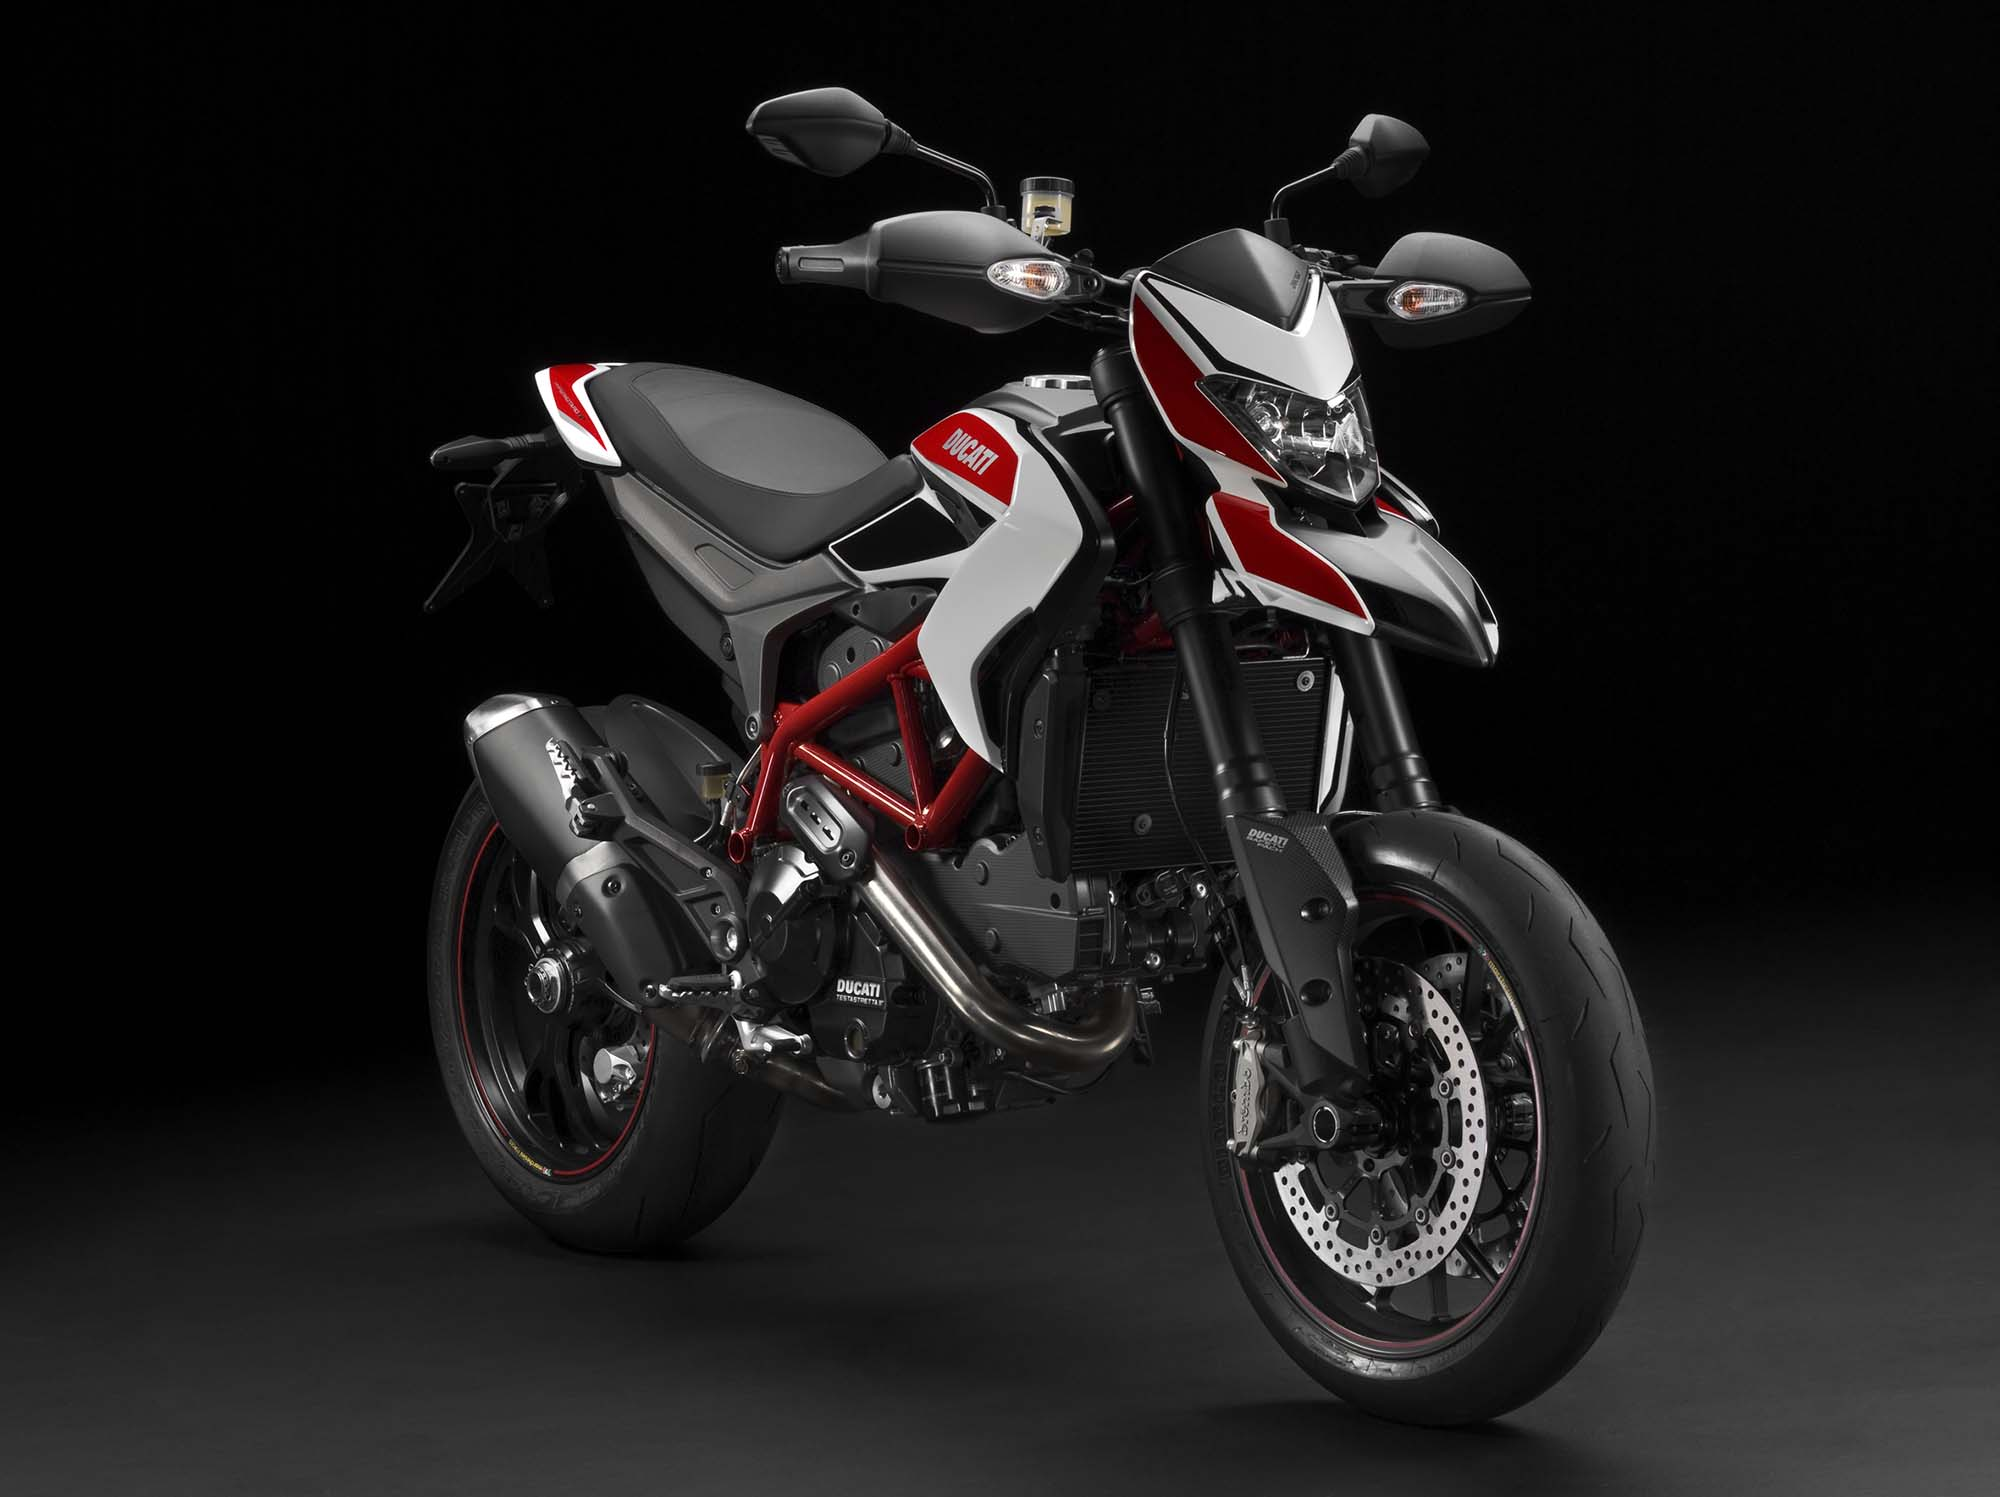 2013 Ducati Hypermotard Makes More Tickets Than Bieber